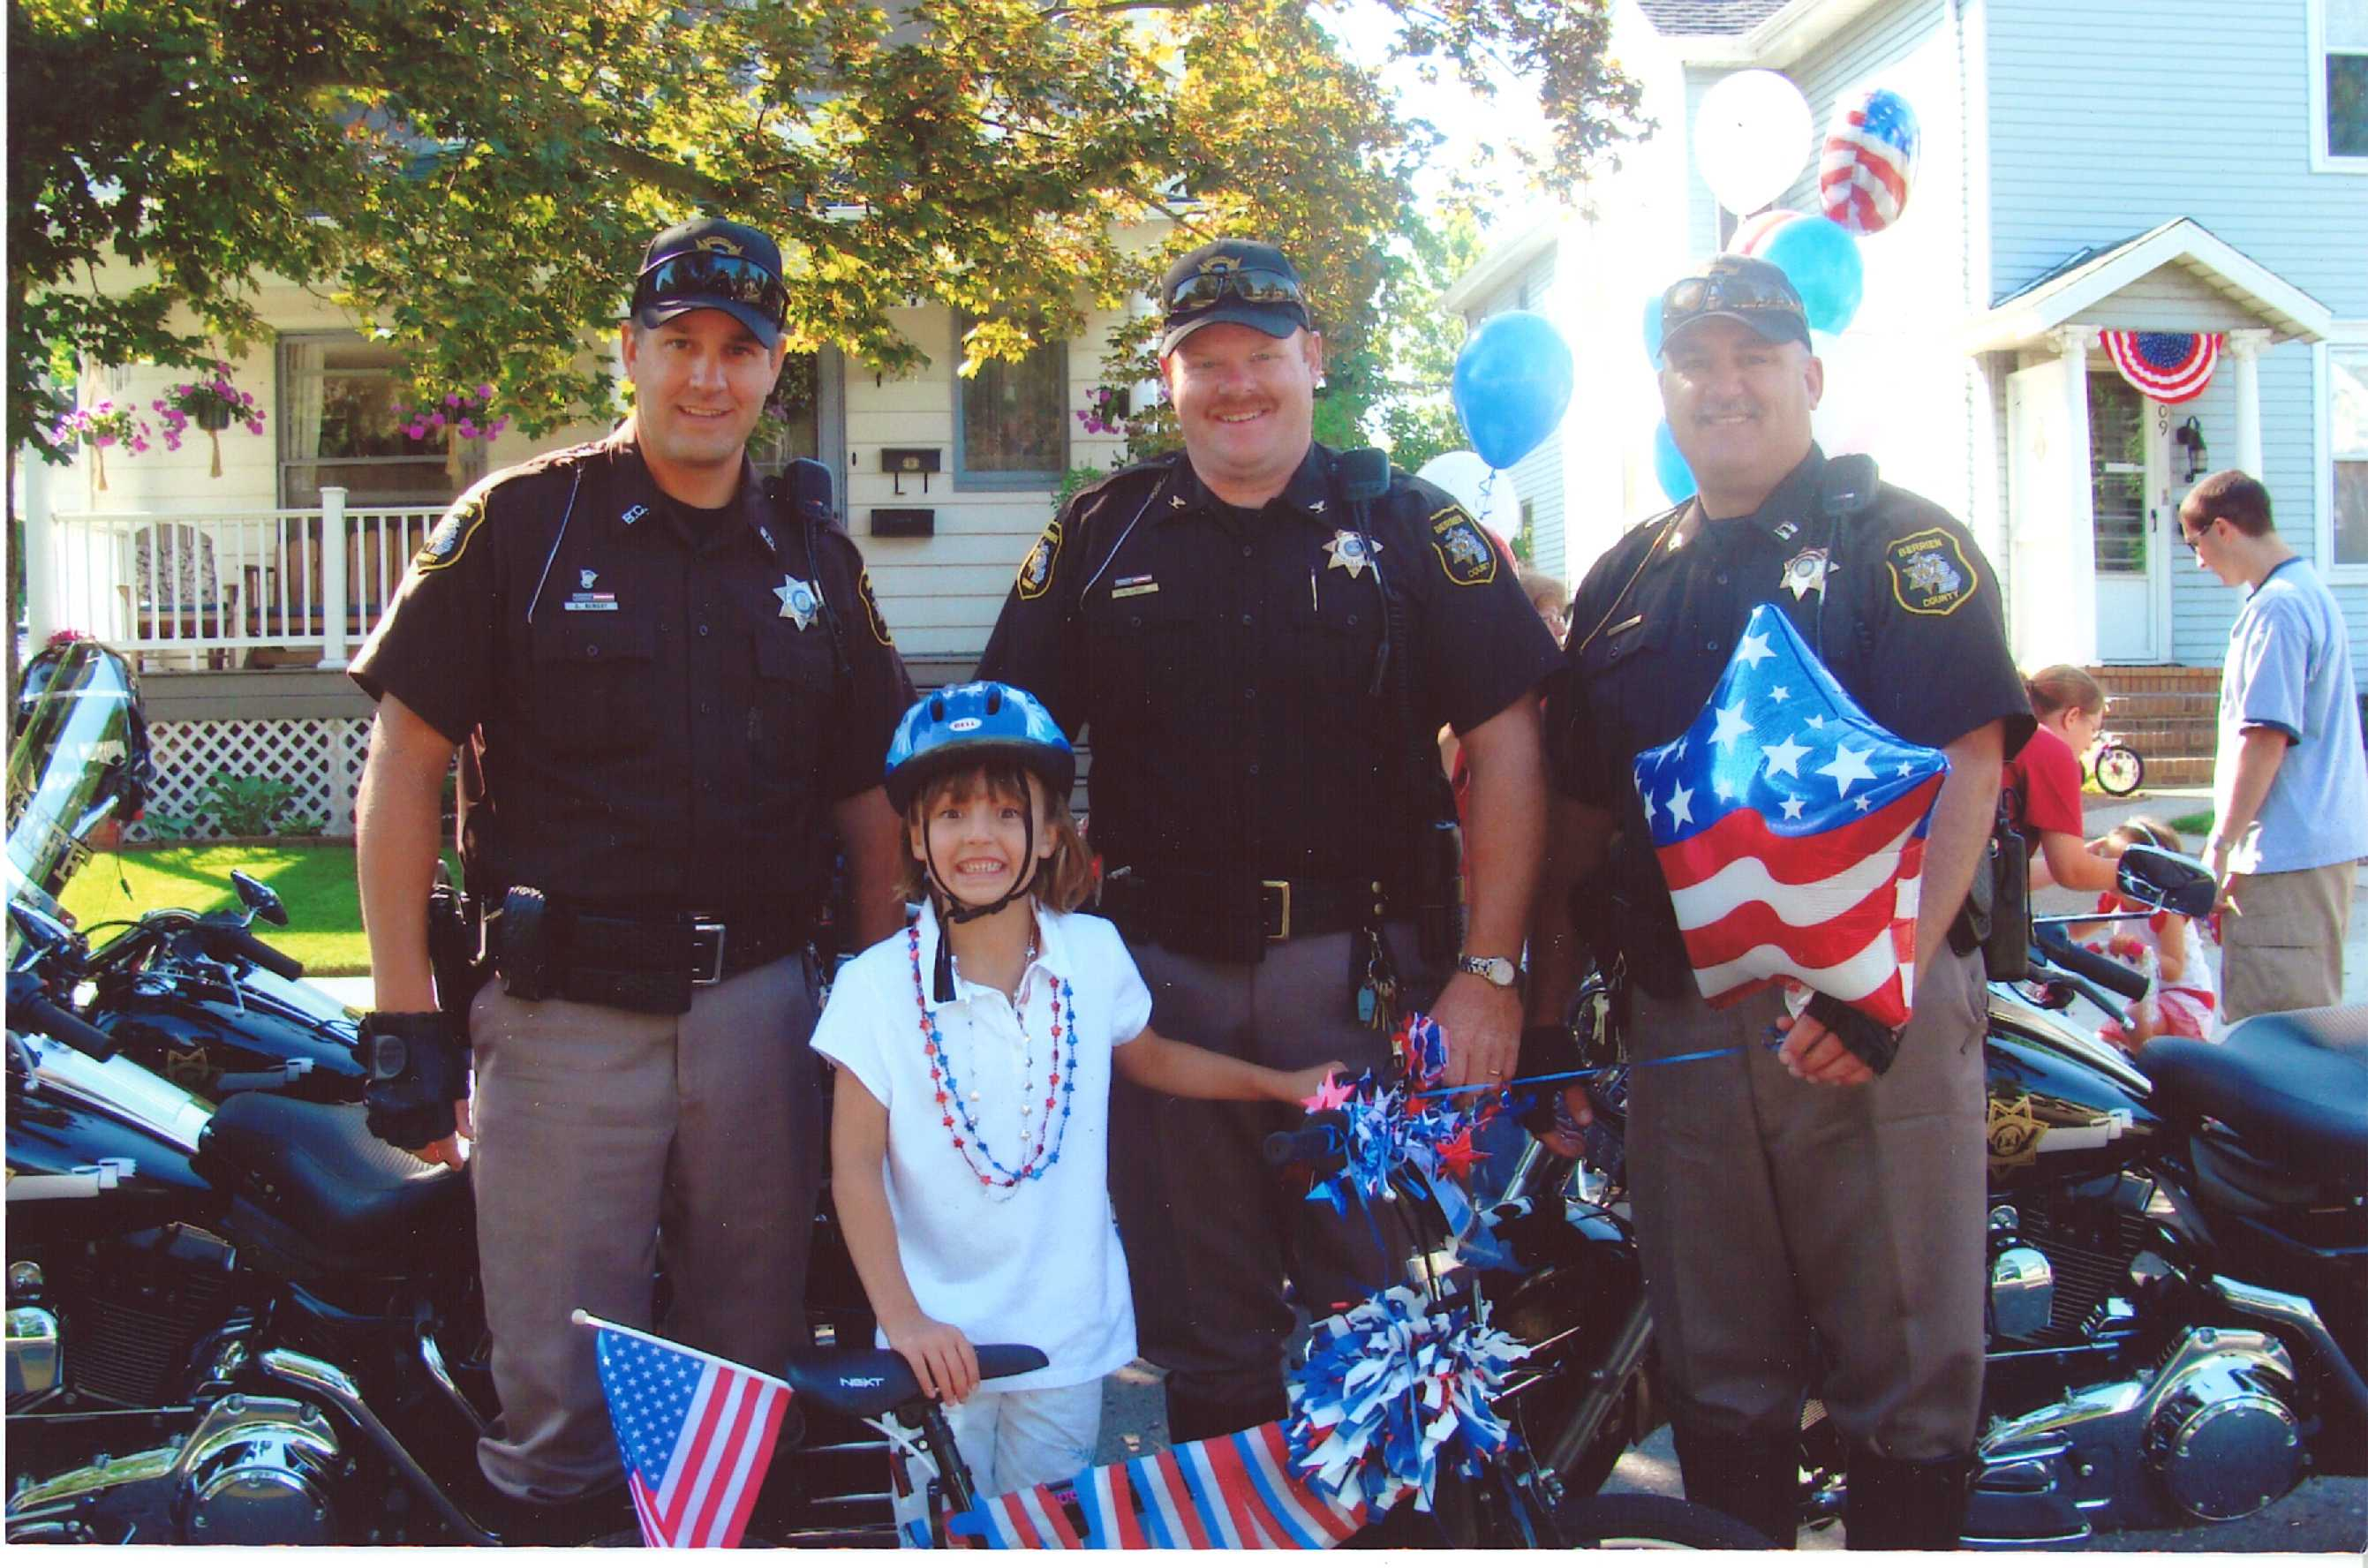 Motor Officers Pose With a Junior Cyclist